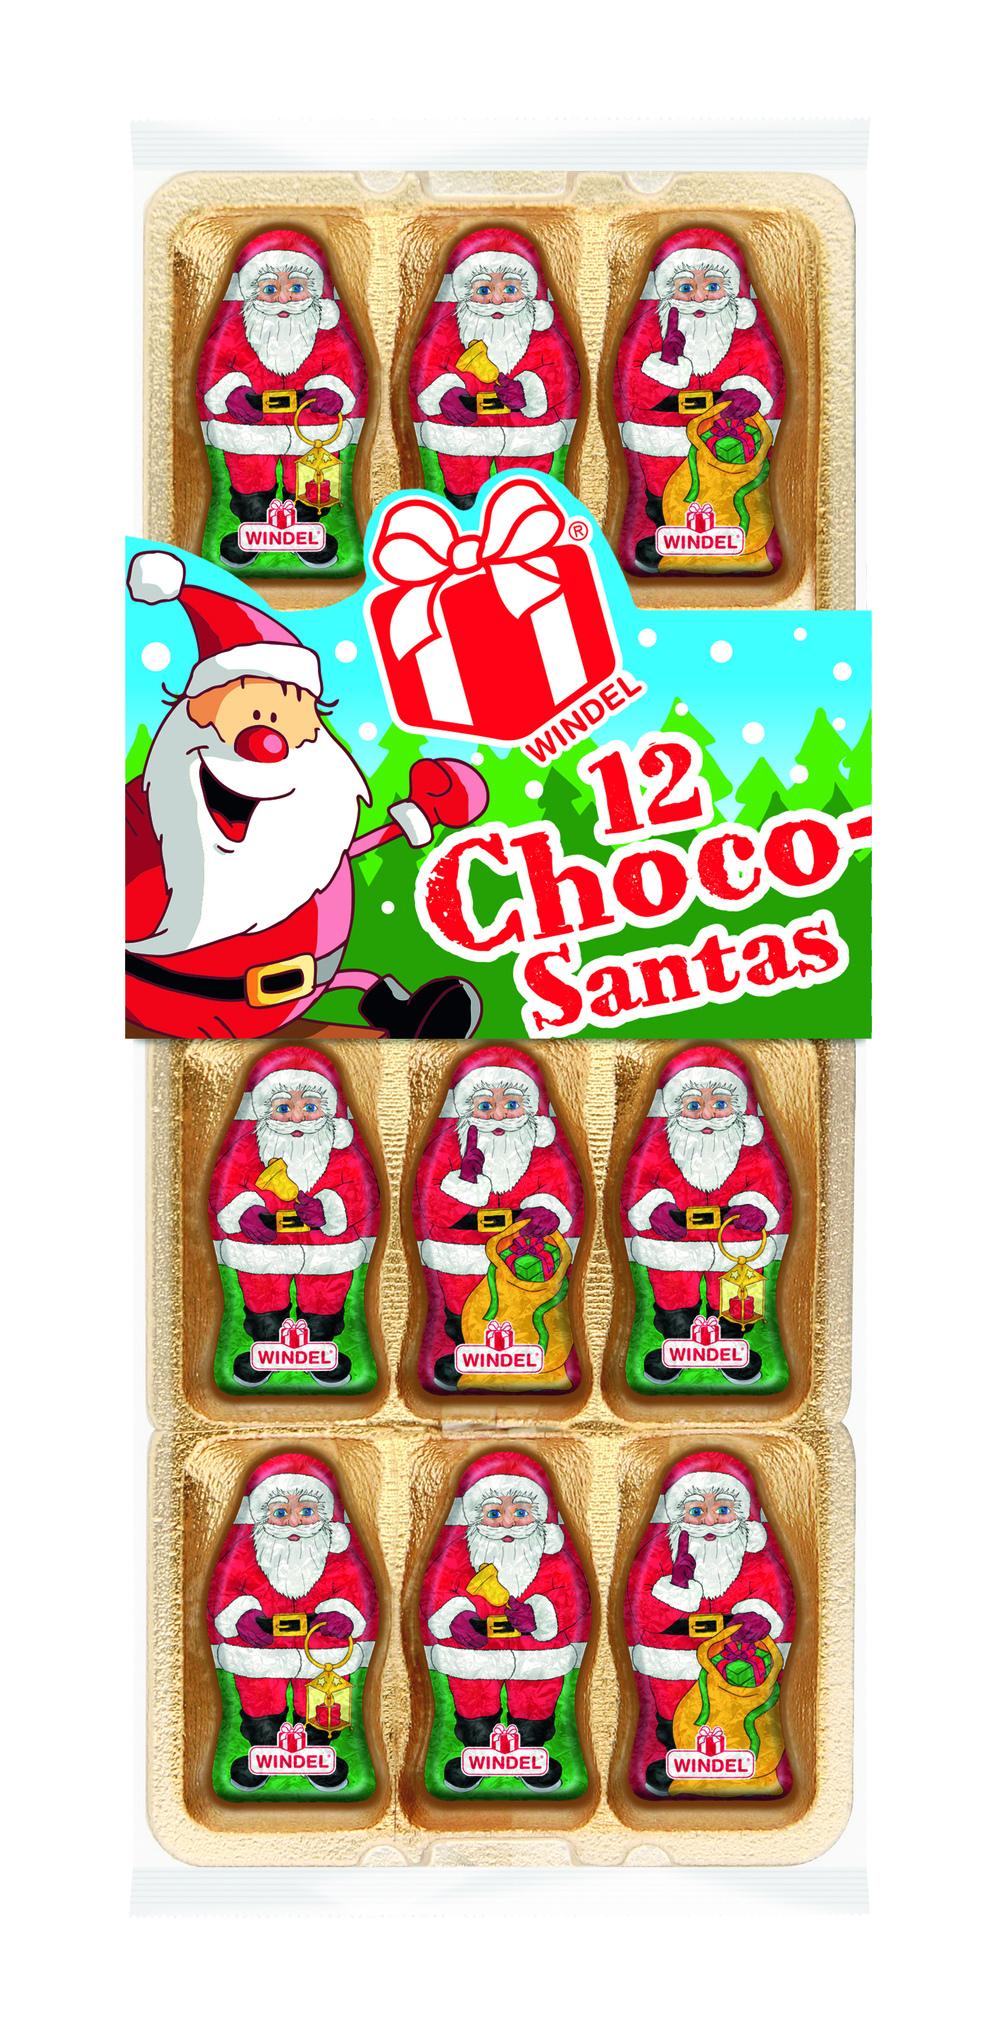 Windel Chocolate Santas